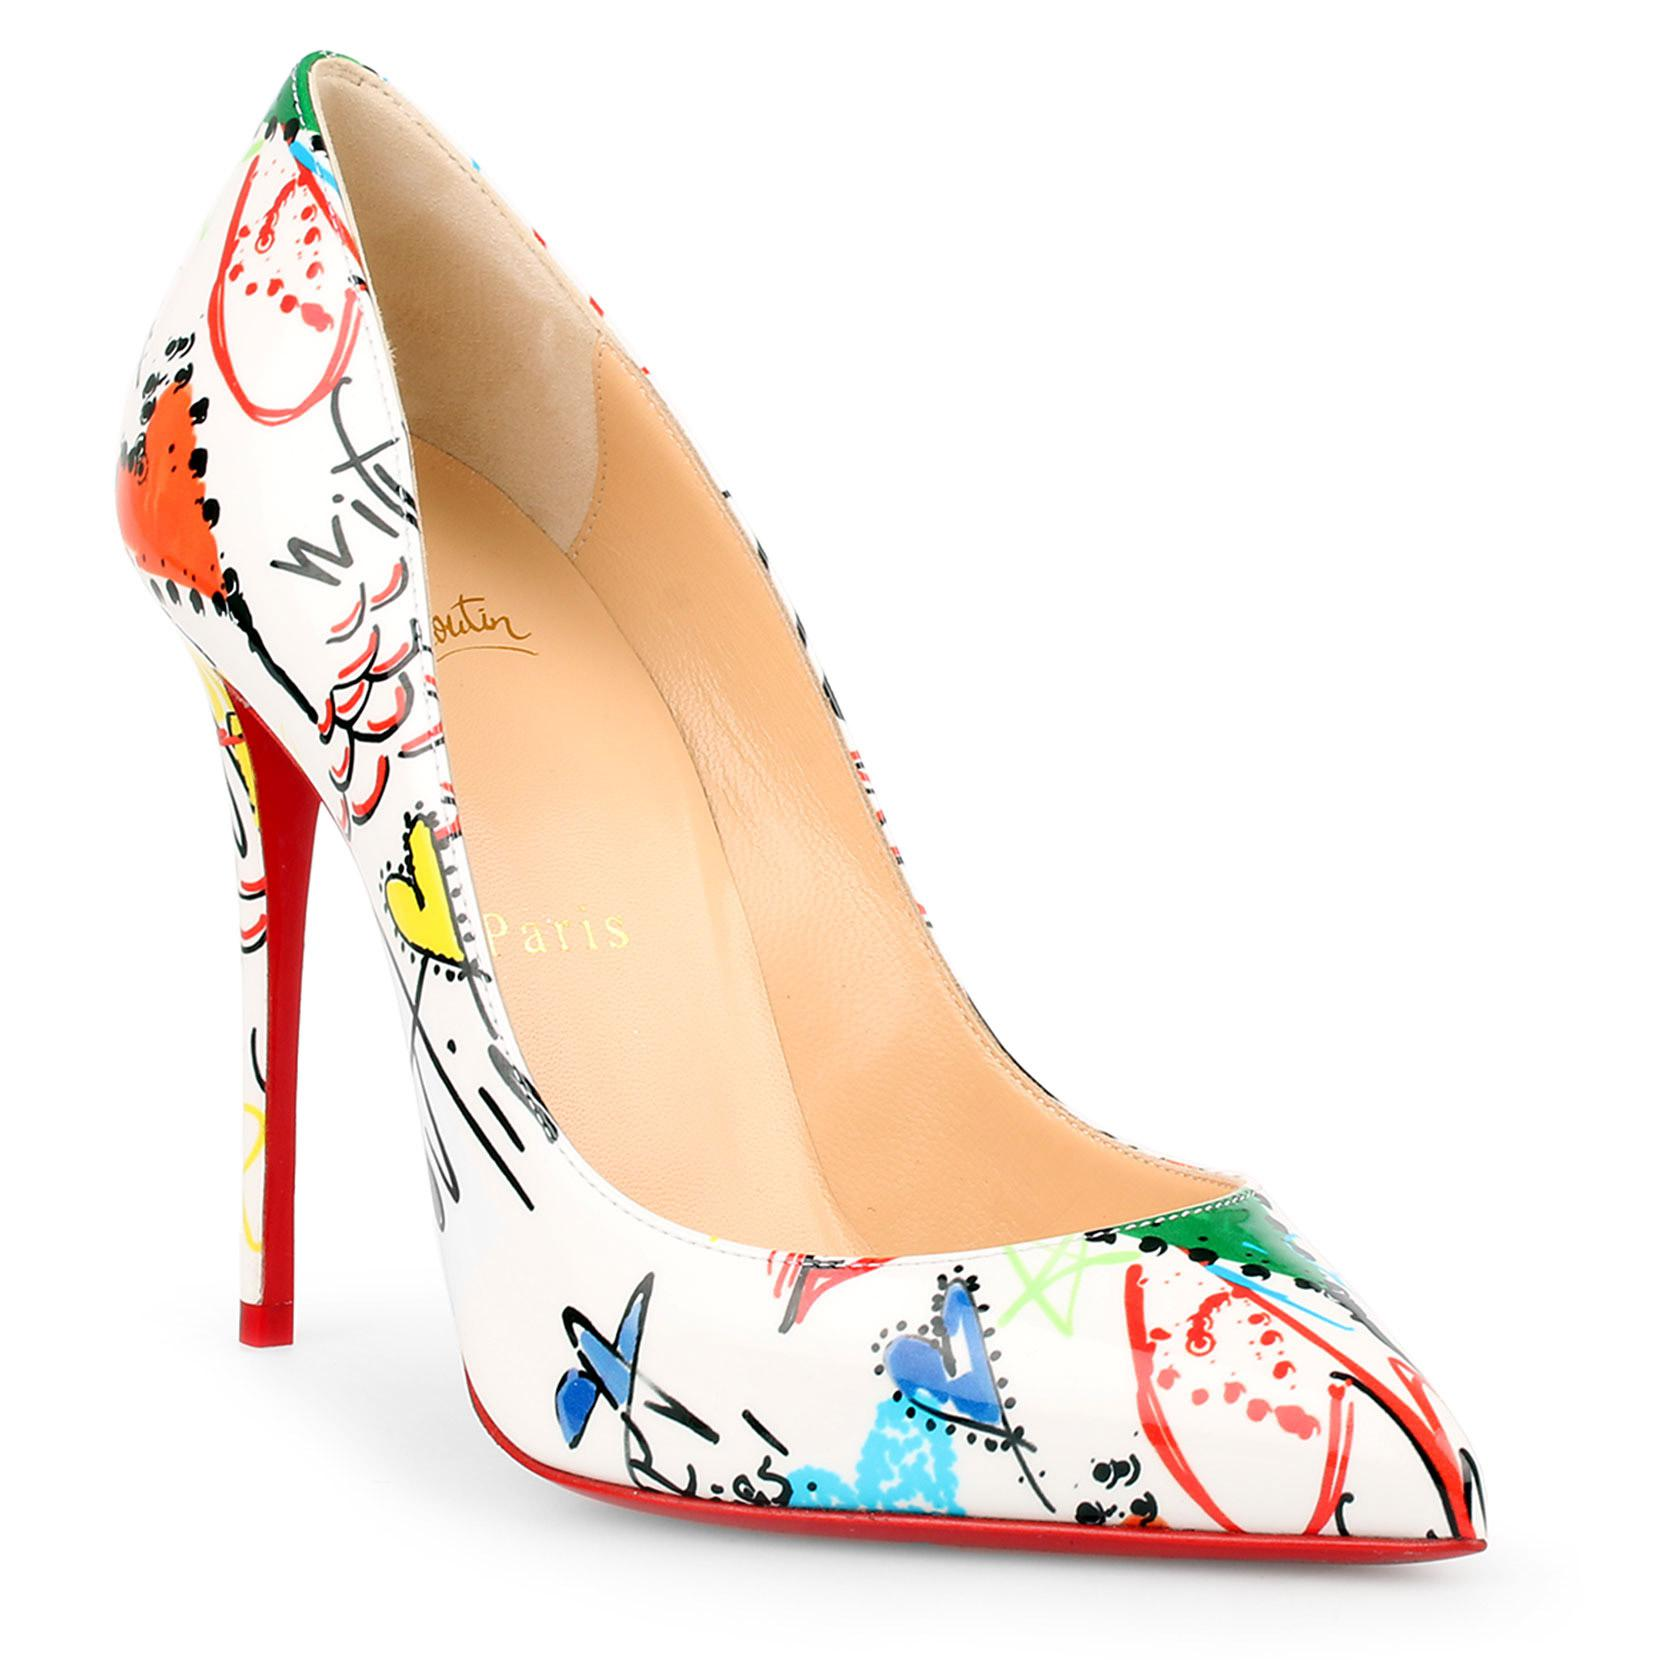 8b2ea0add94d Gallery. Previously sold at  Savannahs · Women s Christian Louboutin Pigalle  ...